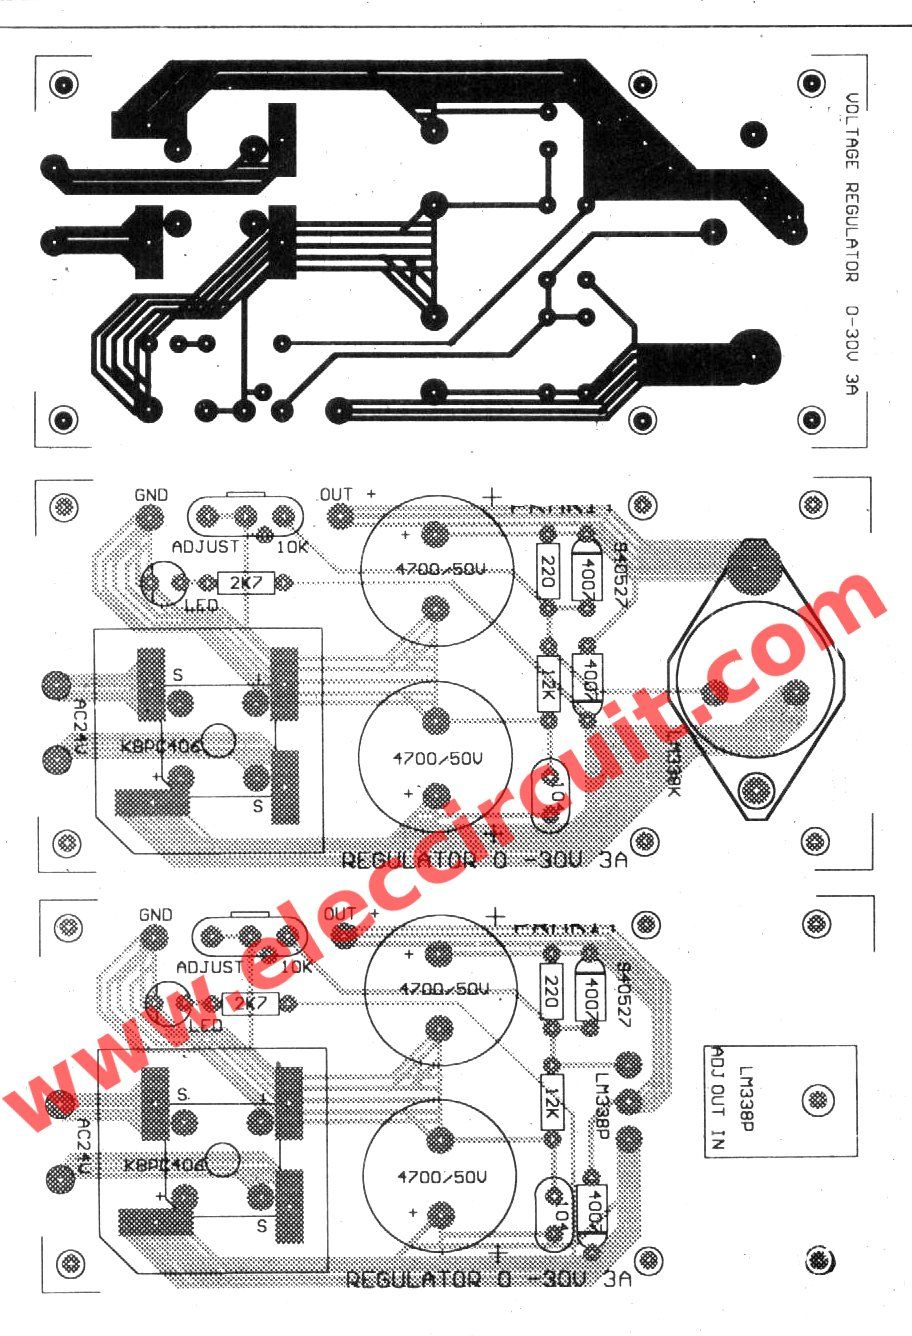 lm338 adjustable power supply 5a